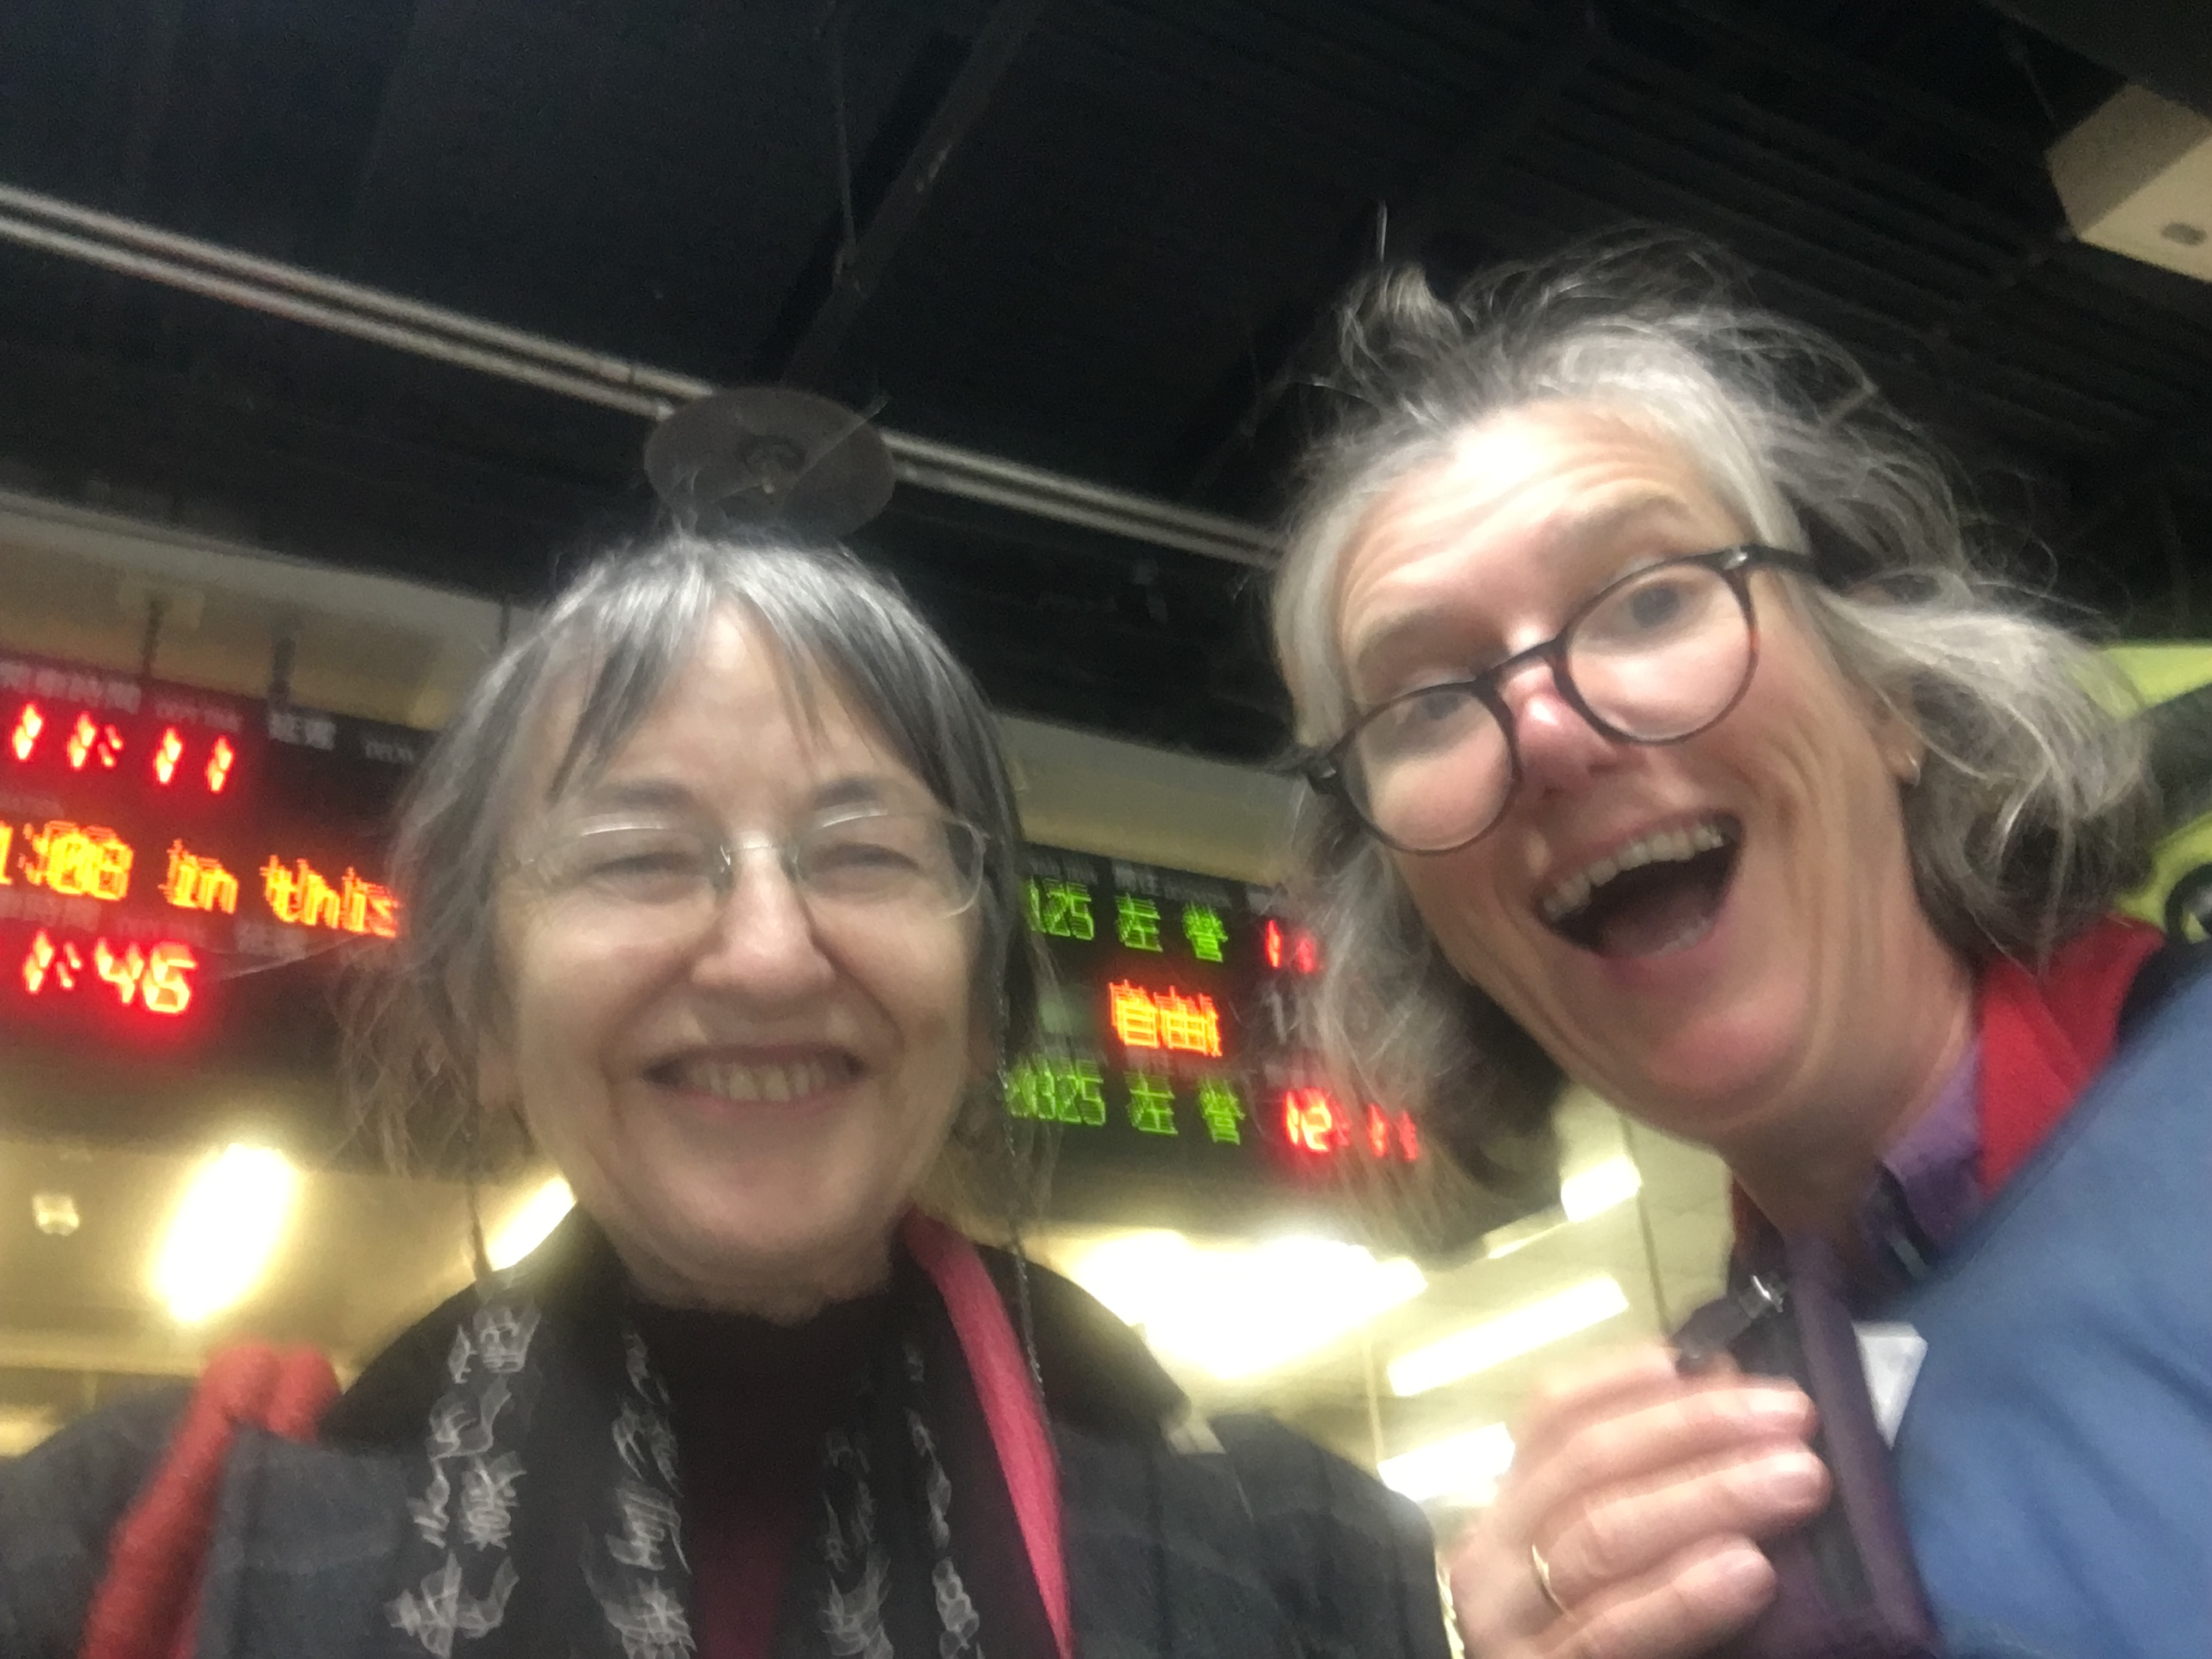 Sue Jollow and I celebrate being in the right place at the right time - Taipei Fast Train!